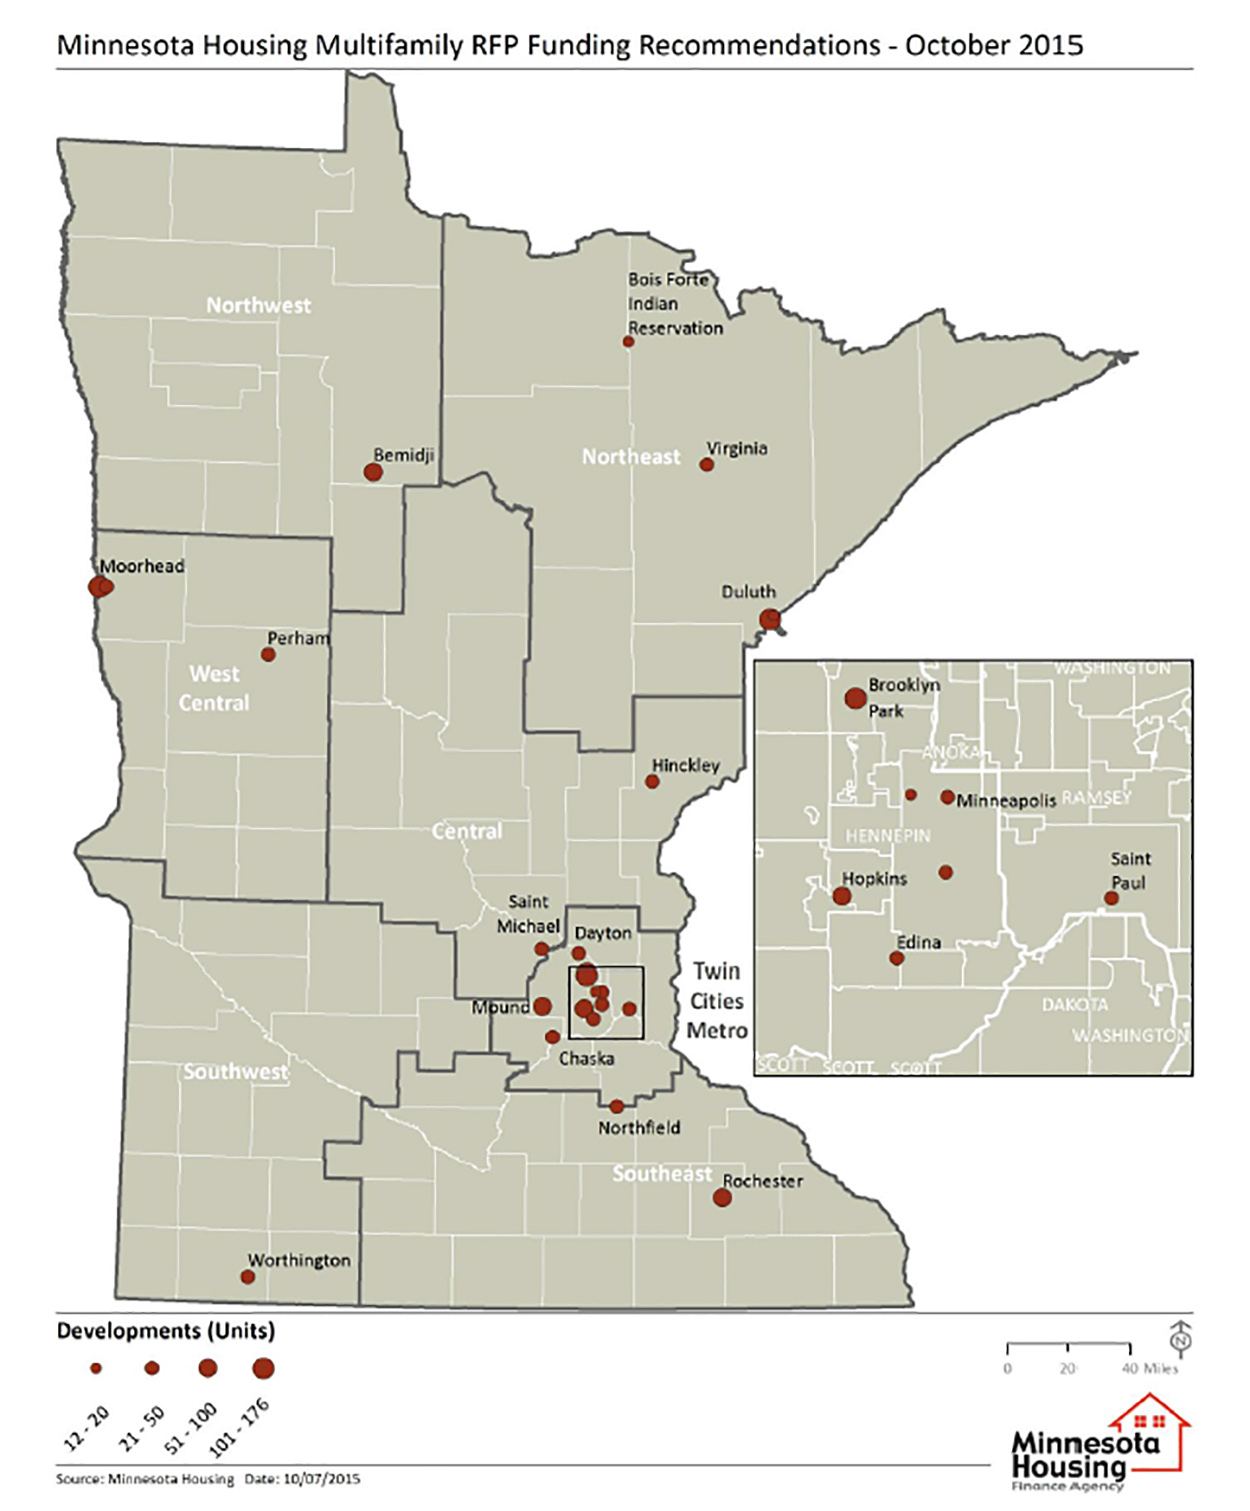 Find this map on page 145 of MN Housing's 2015 October board packet.